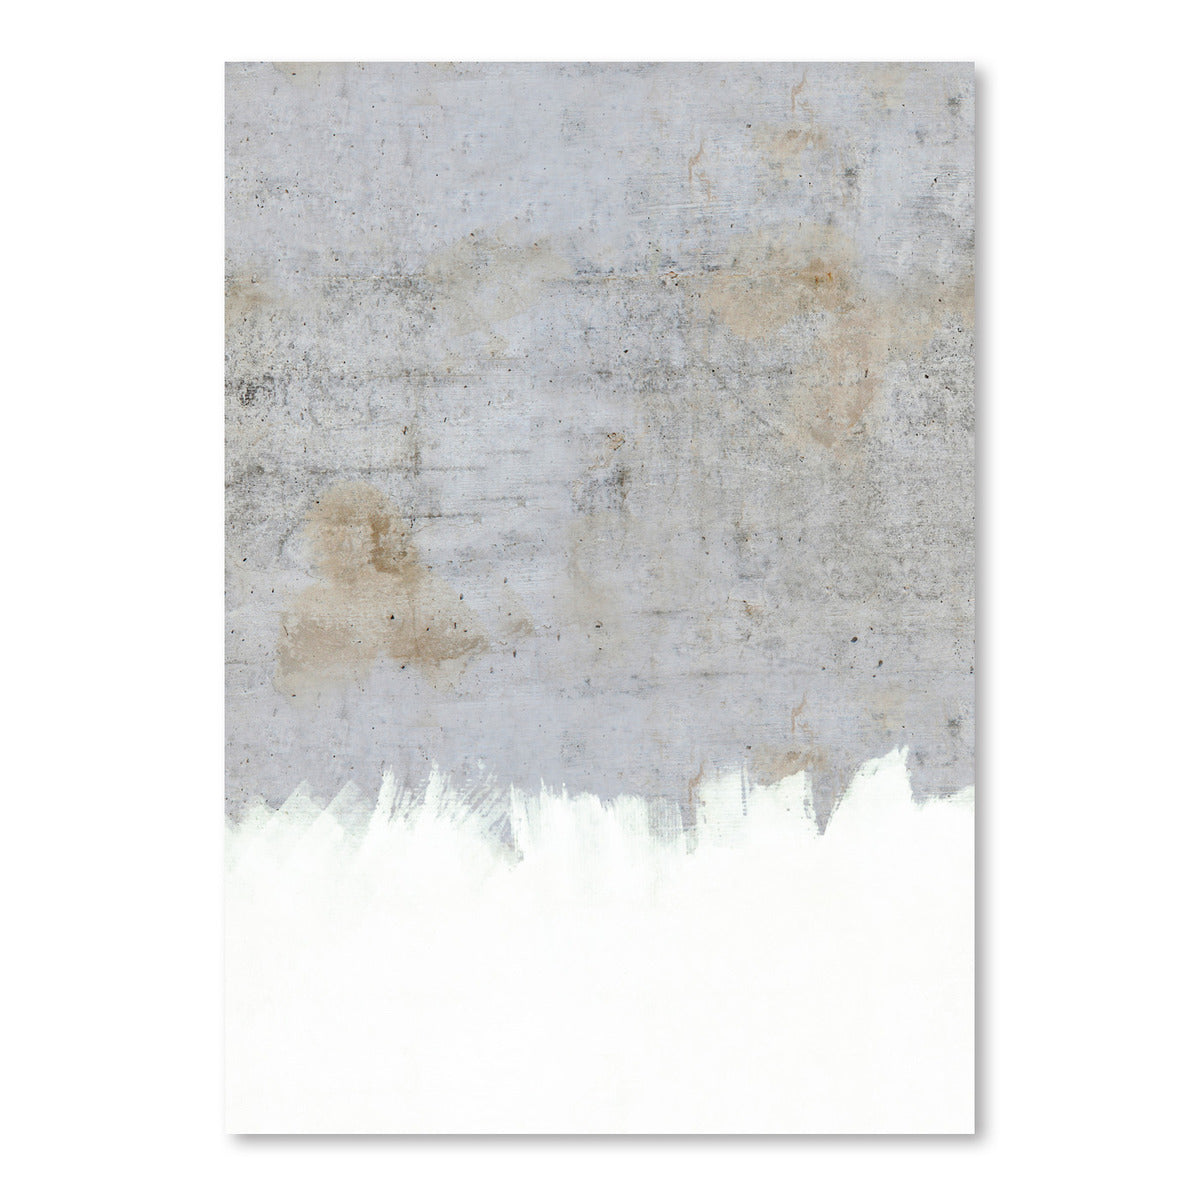 Painting On Raw Concrete by Emanuela Carratoni Art Print - Art Print - Americanflat